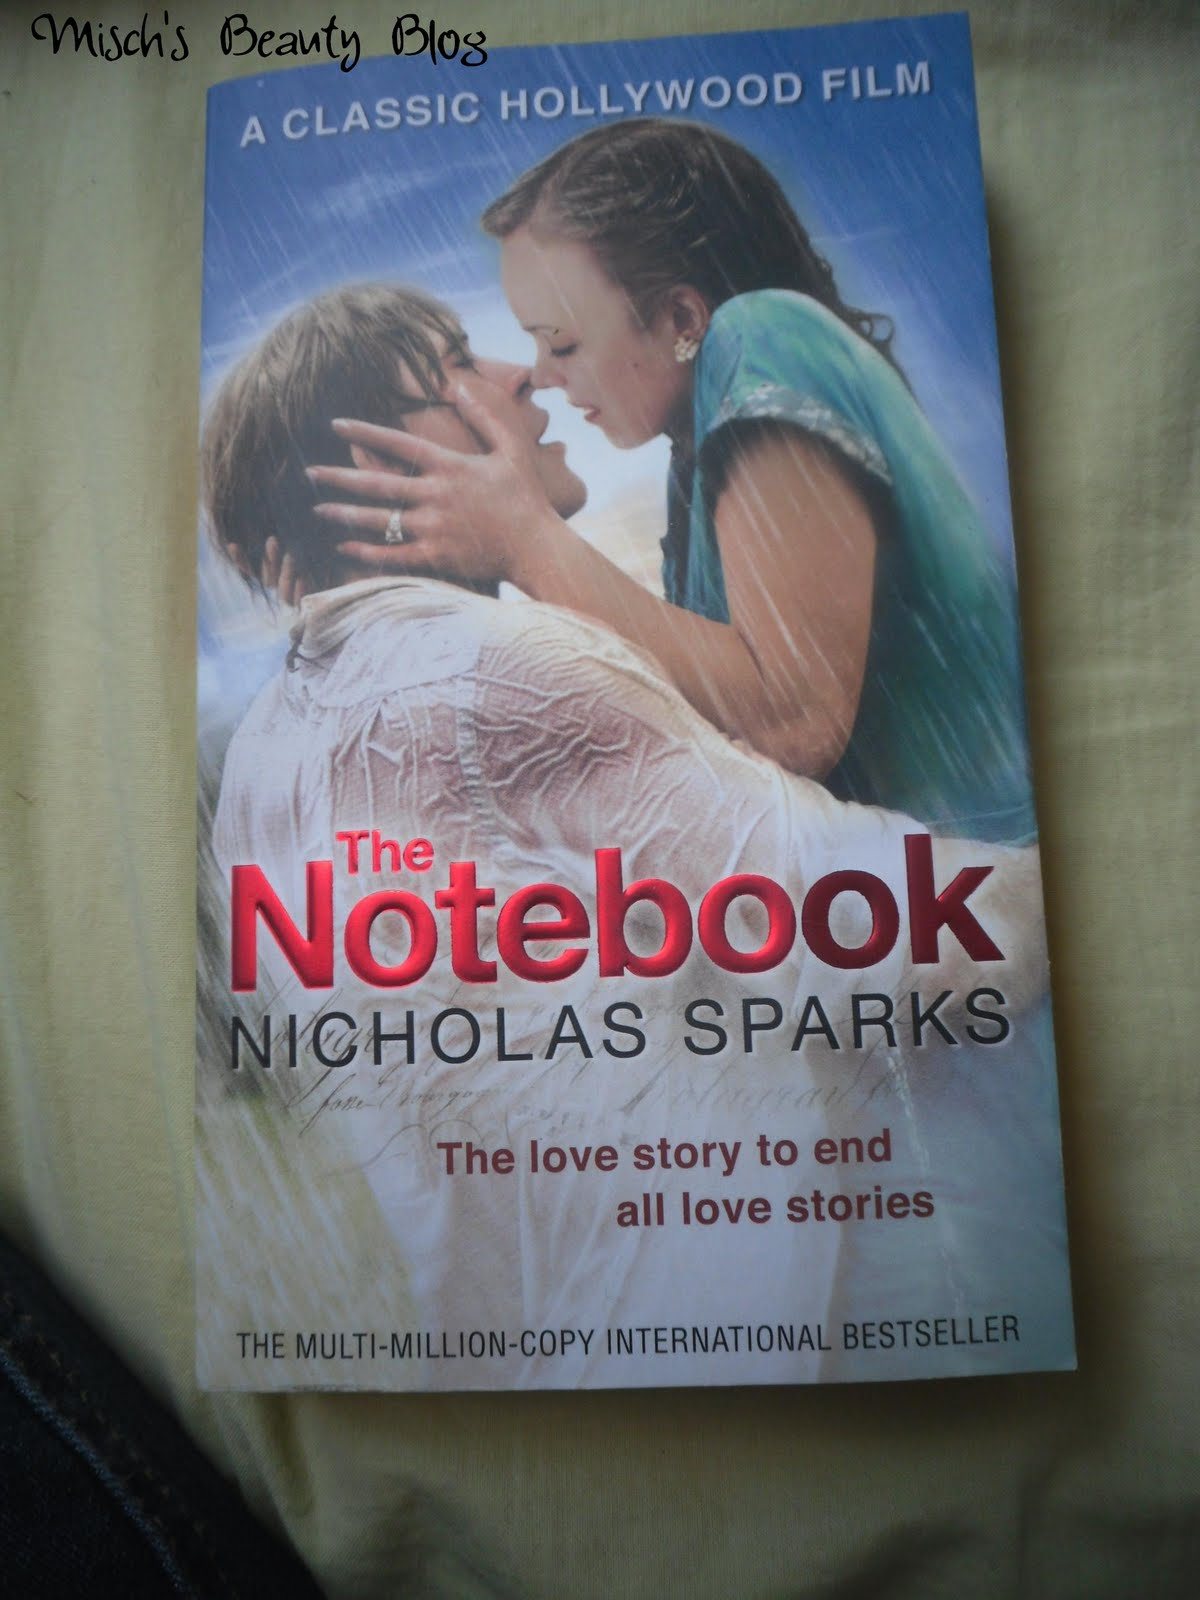 Misch's Beauty Blog: Book Review: The Notebook by Nicholas Sparks